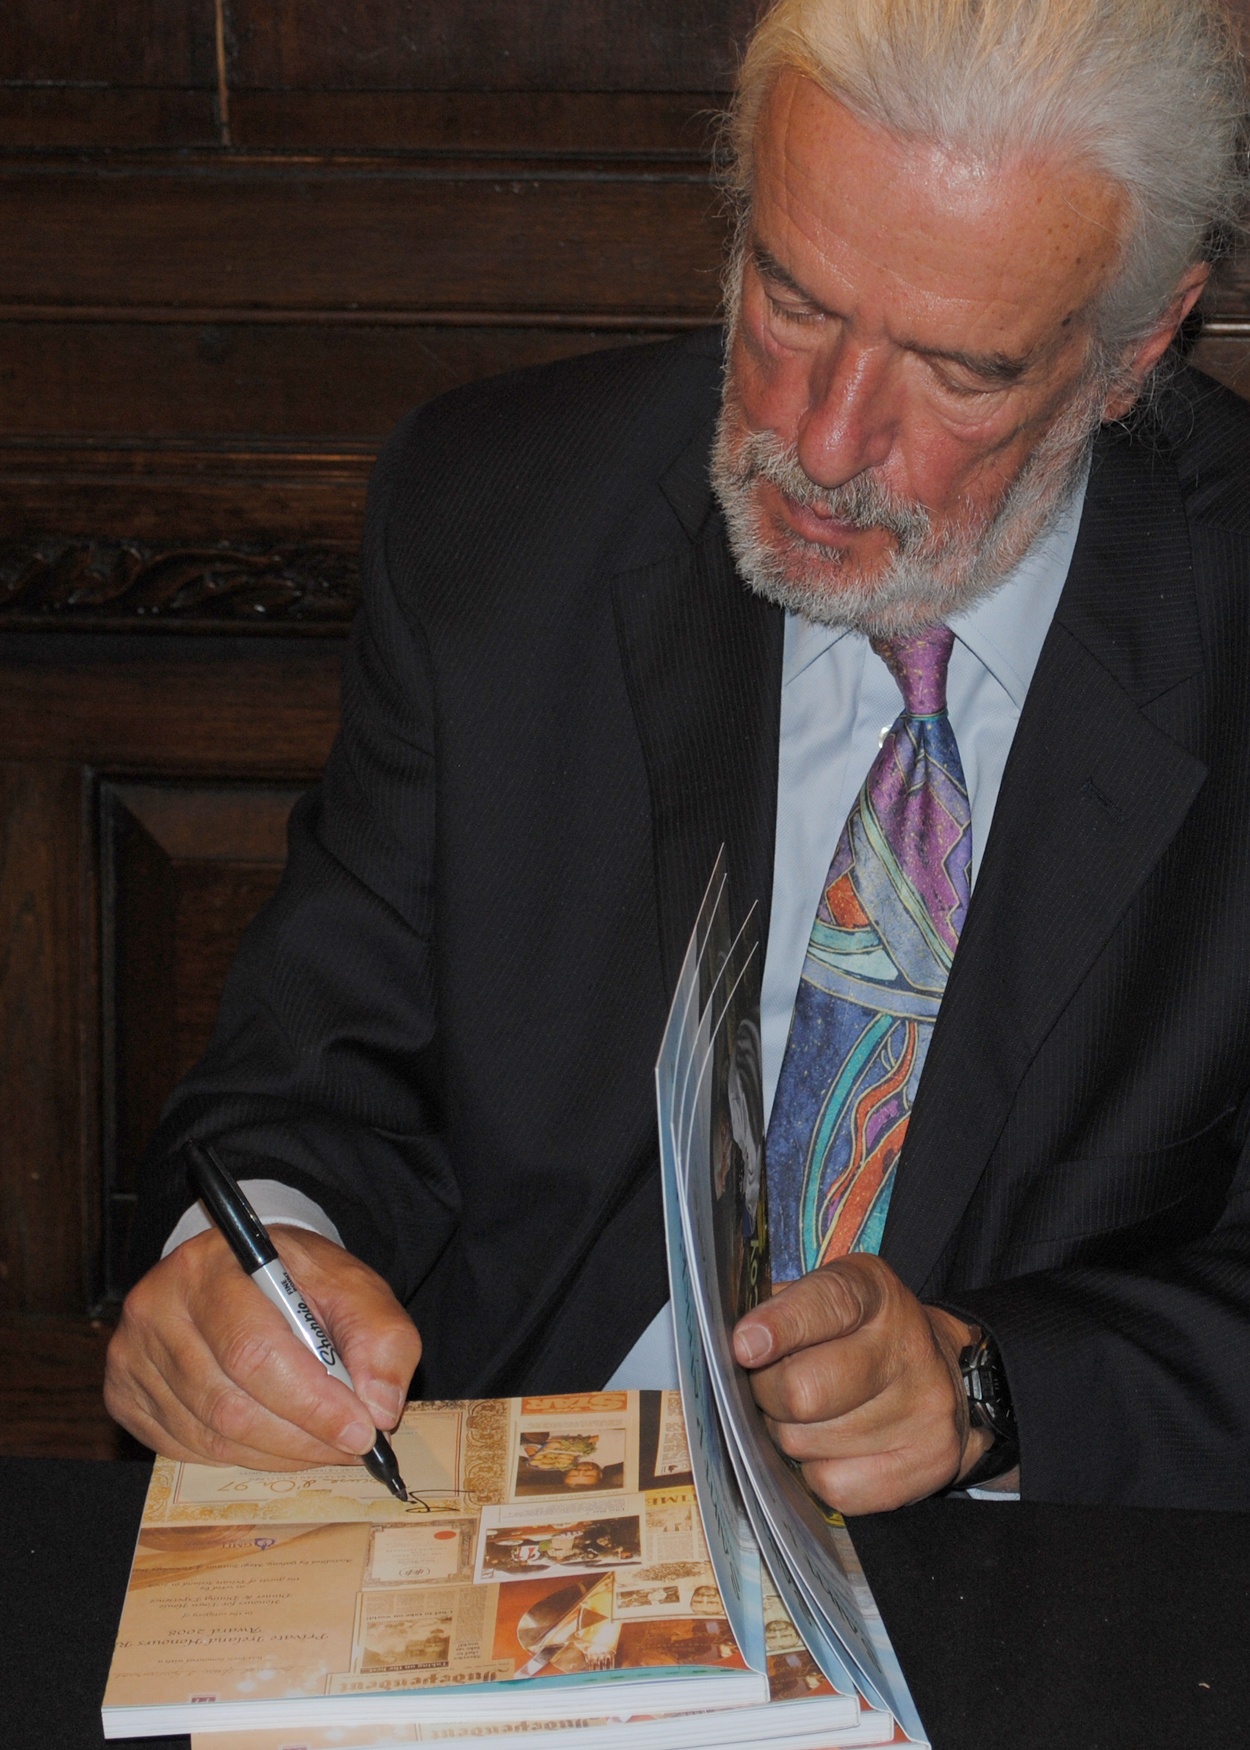 Terry McCoy signing books at the book launch - Saint Patrick's Plate